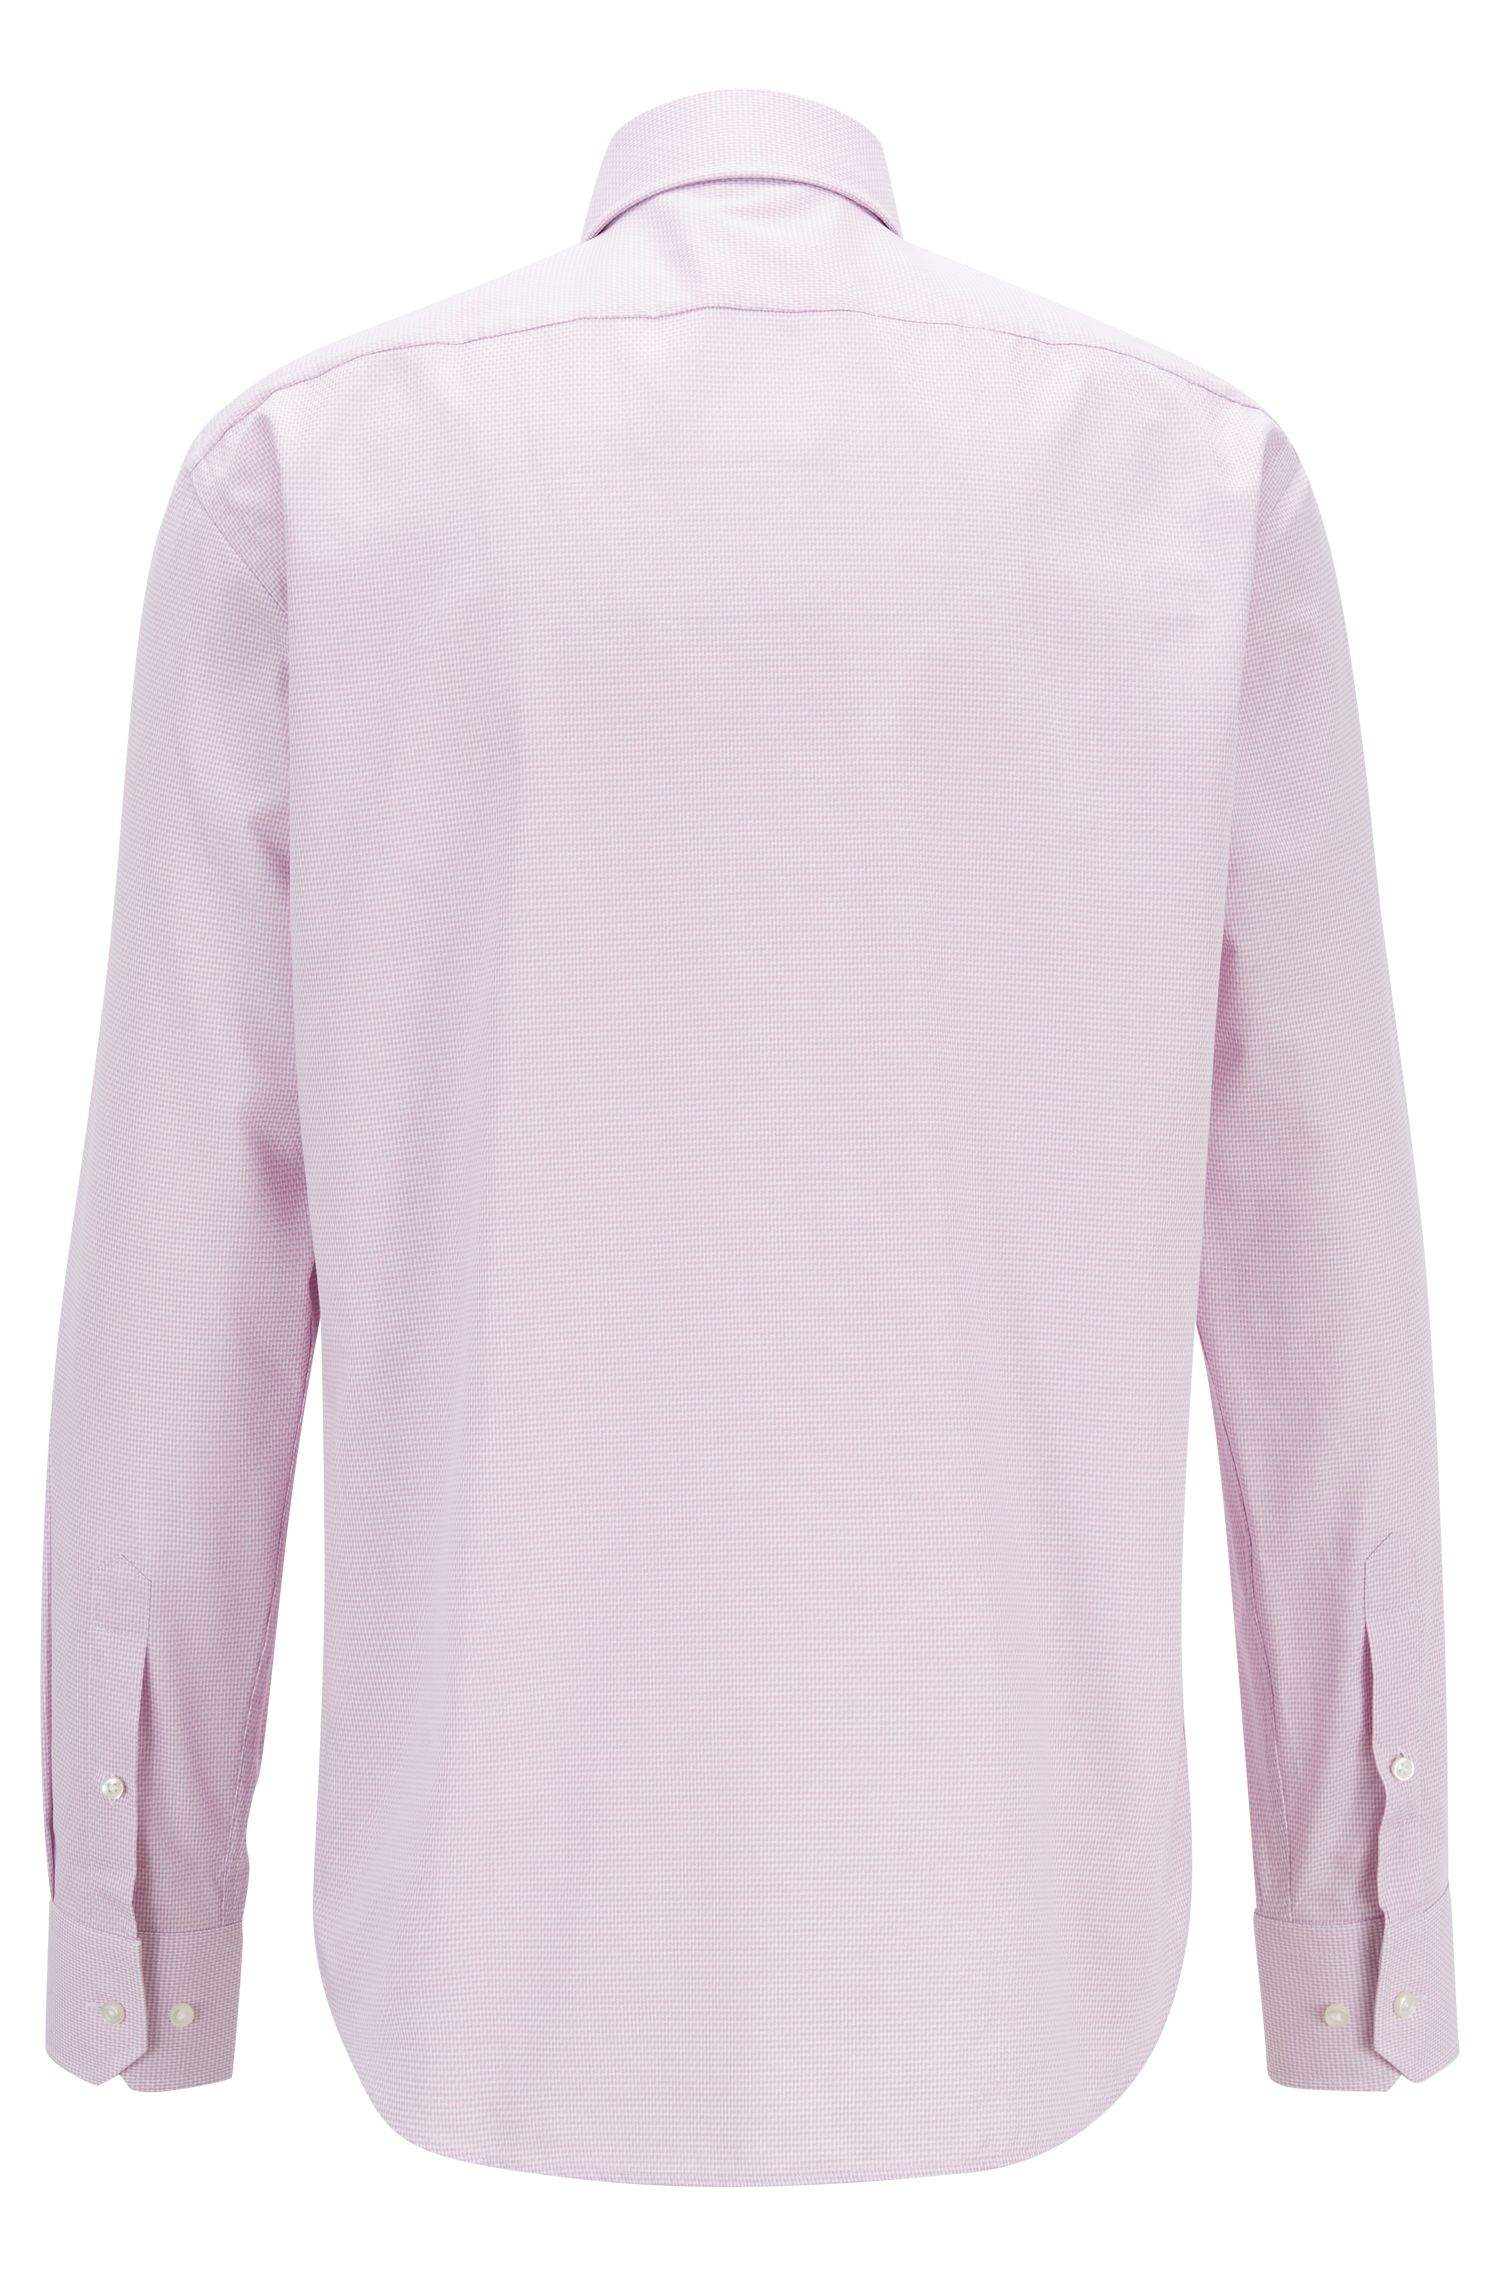 Regular-fit shirt in micro-structured cotton twill, light pink